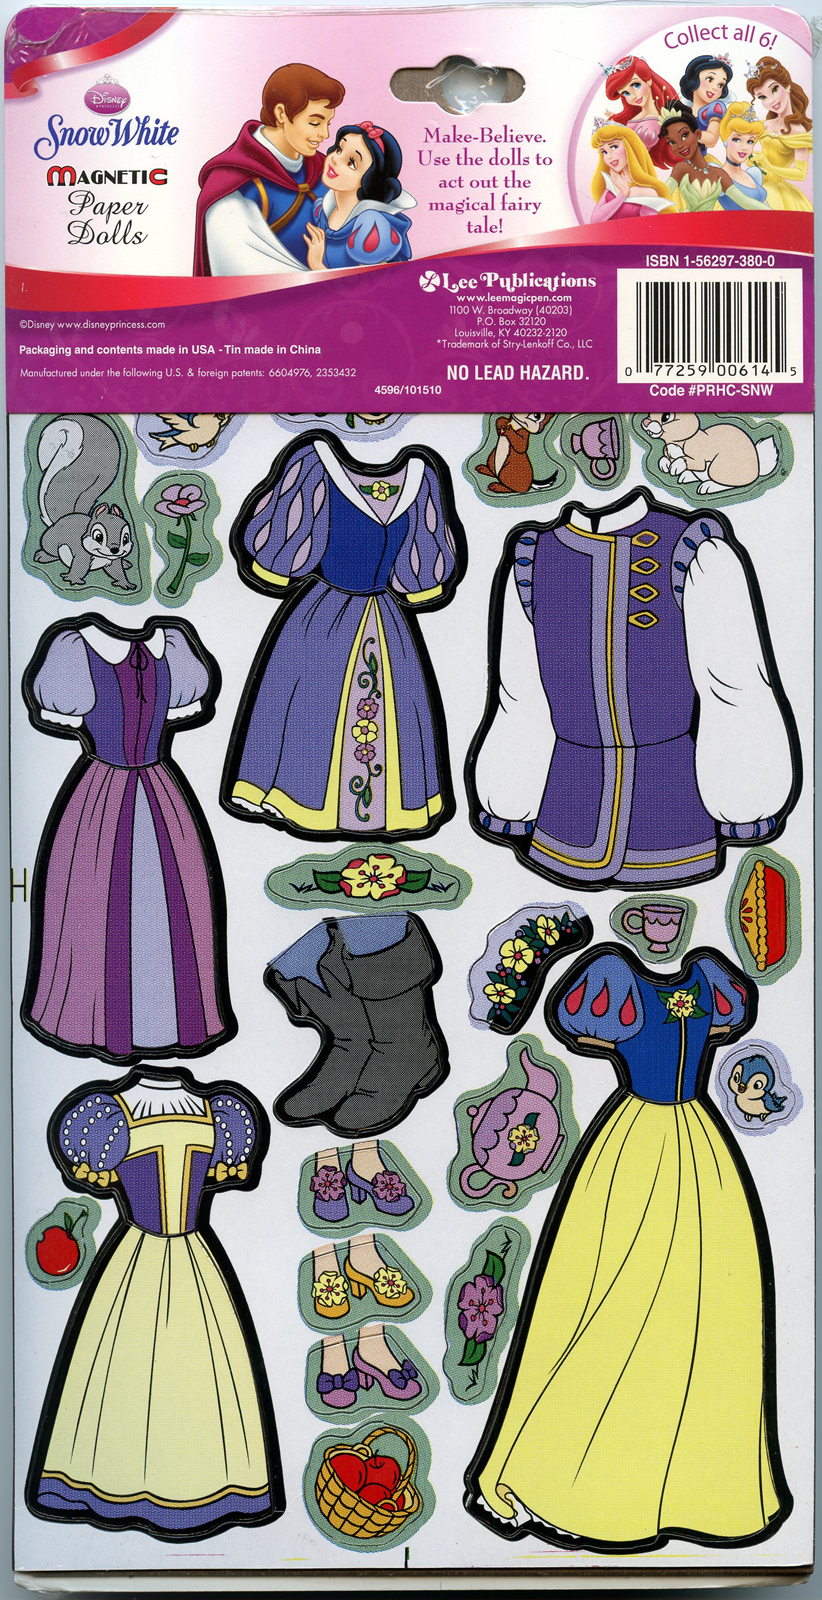 & Filmic Light - Snow White Archive: 2012 Snow White Magnetic Paper Dolls